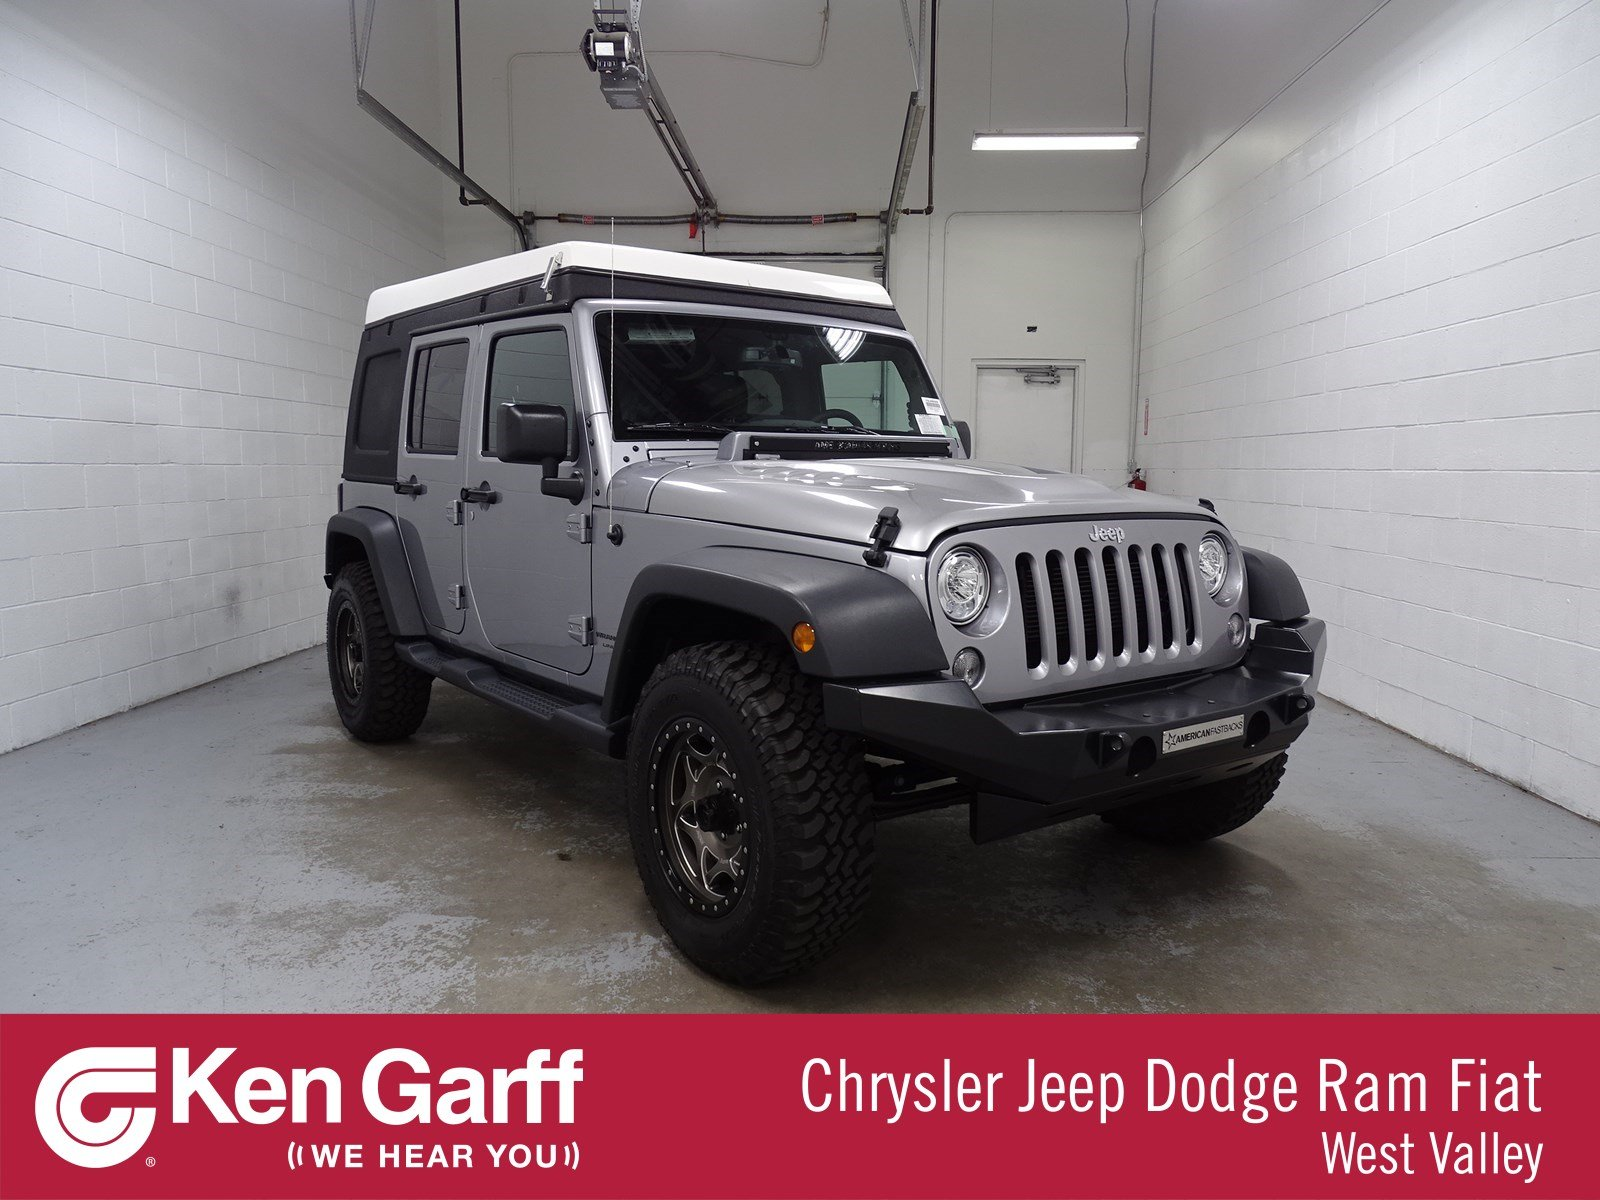 Pre-Owned 2018 Jeep Wrangler JK Unlimited Rubicon